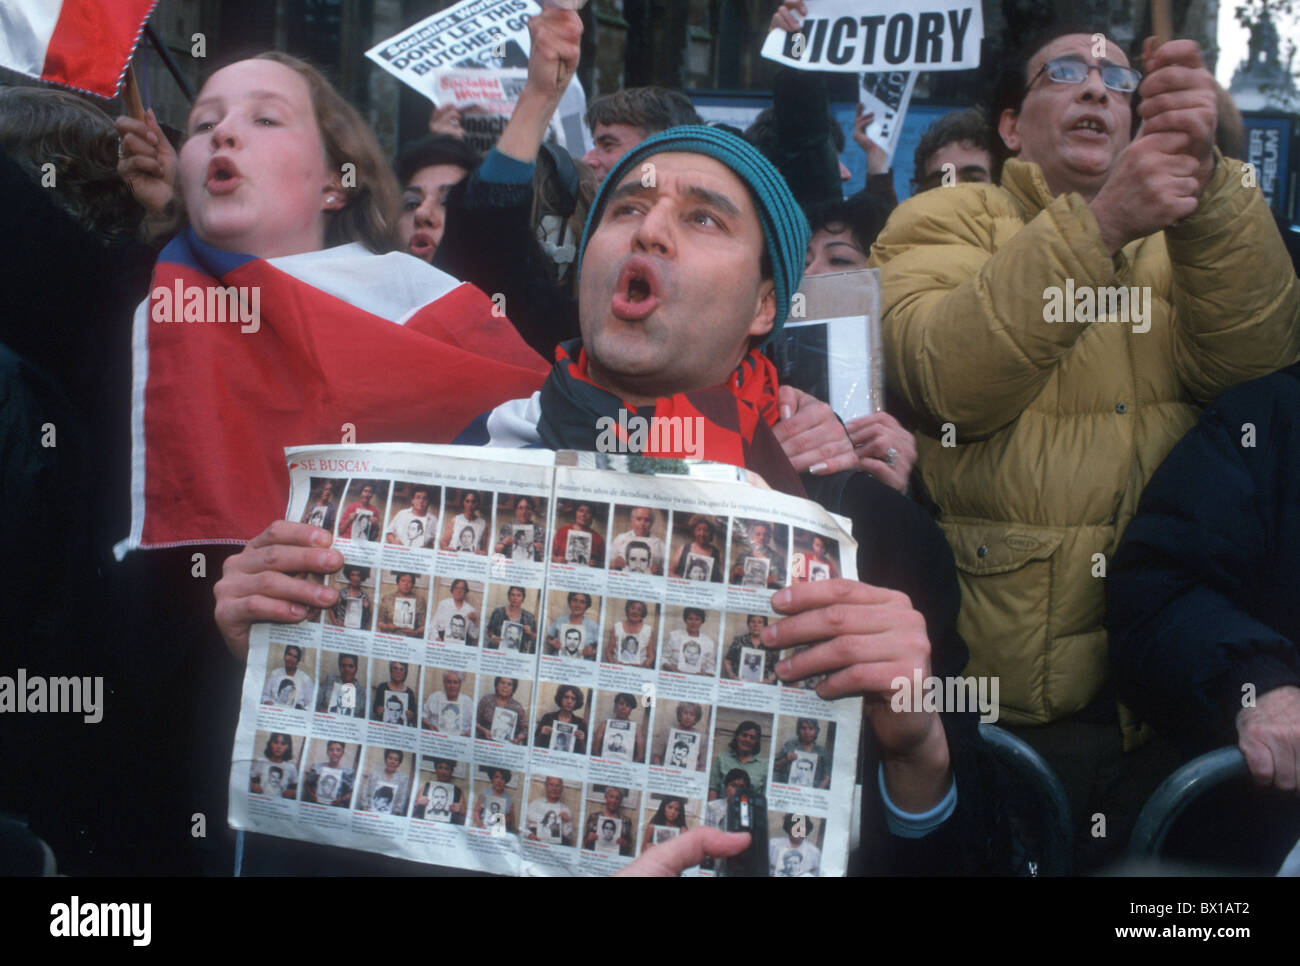 Uk Demonstration To Celebrate Arrest Of Late General Pinochet In Stock Photo Alamy